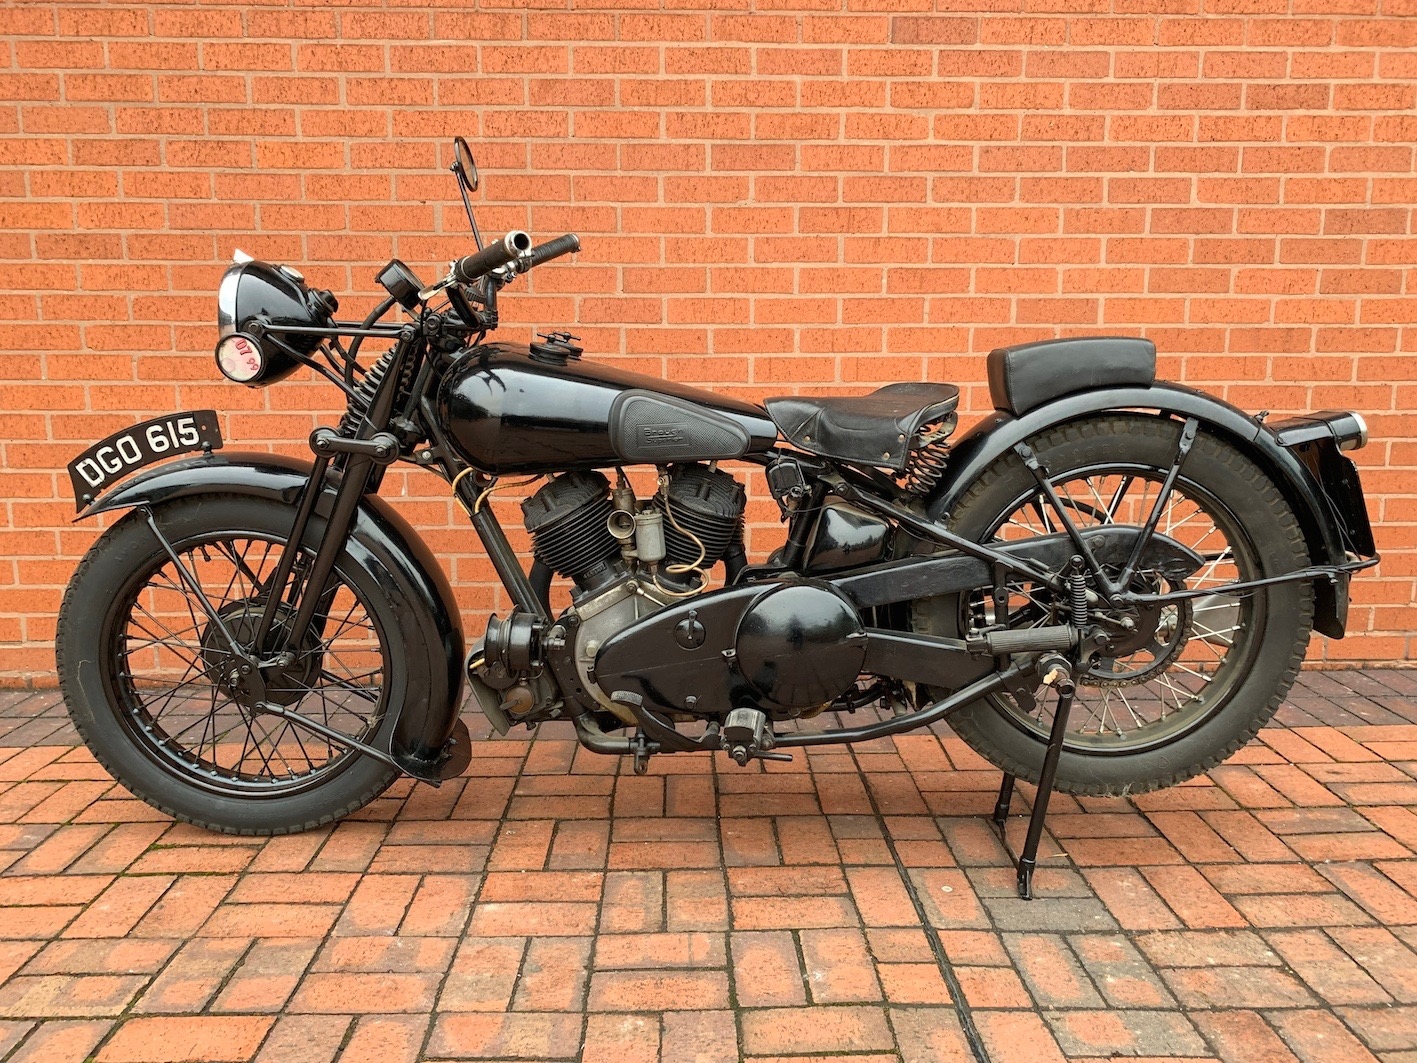 Barn find? No, this motorcycle was found in the living room